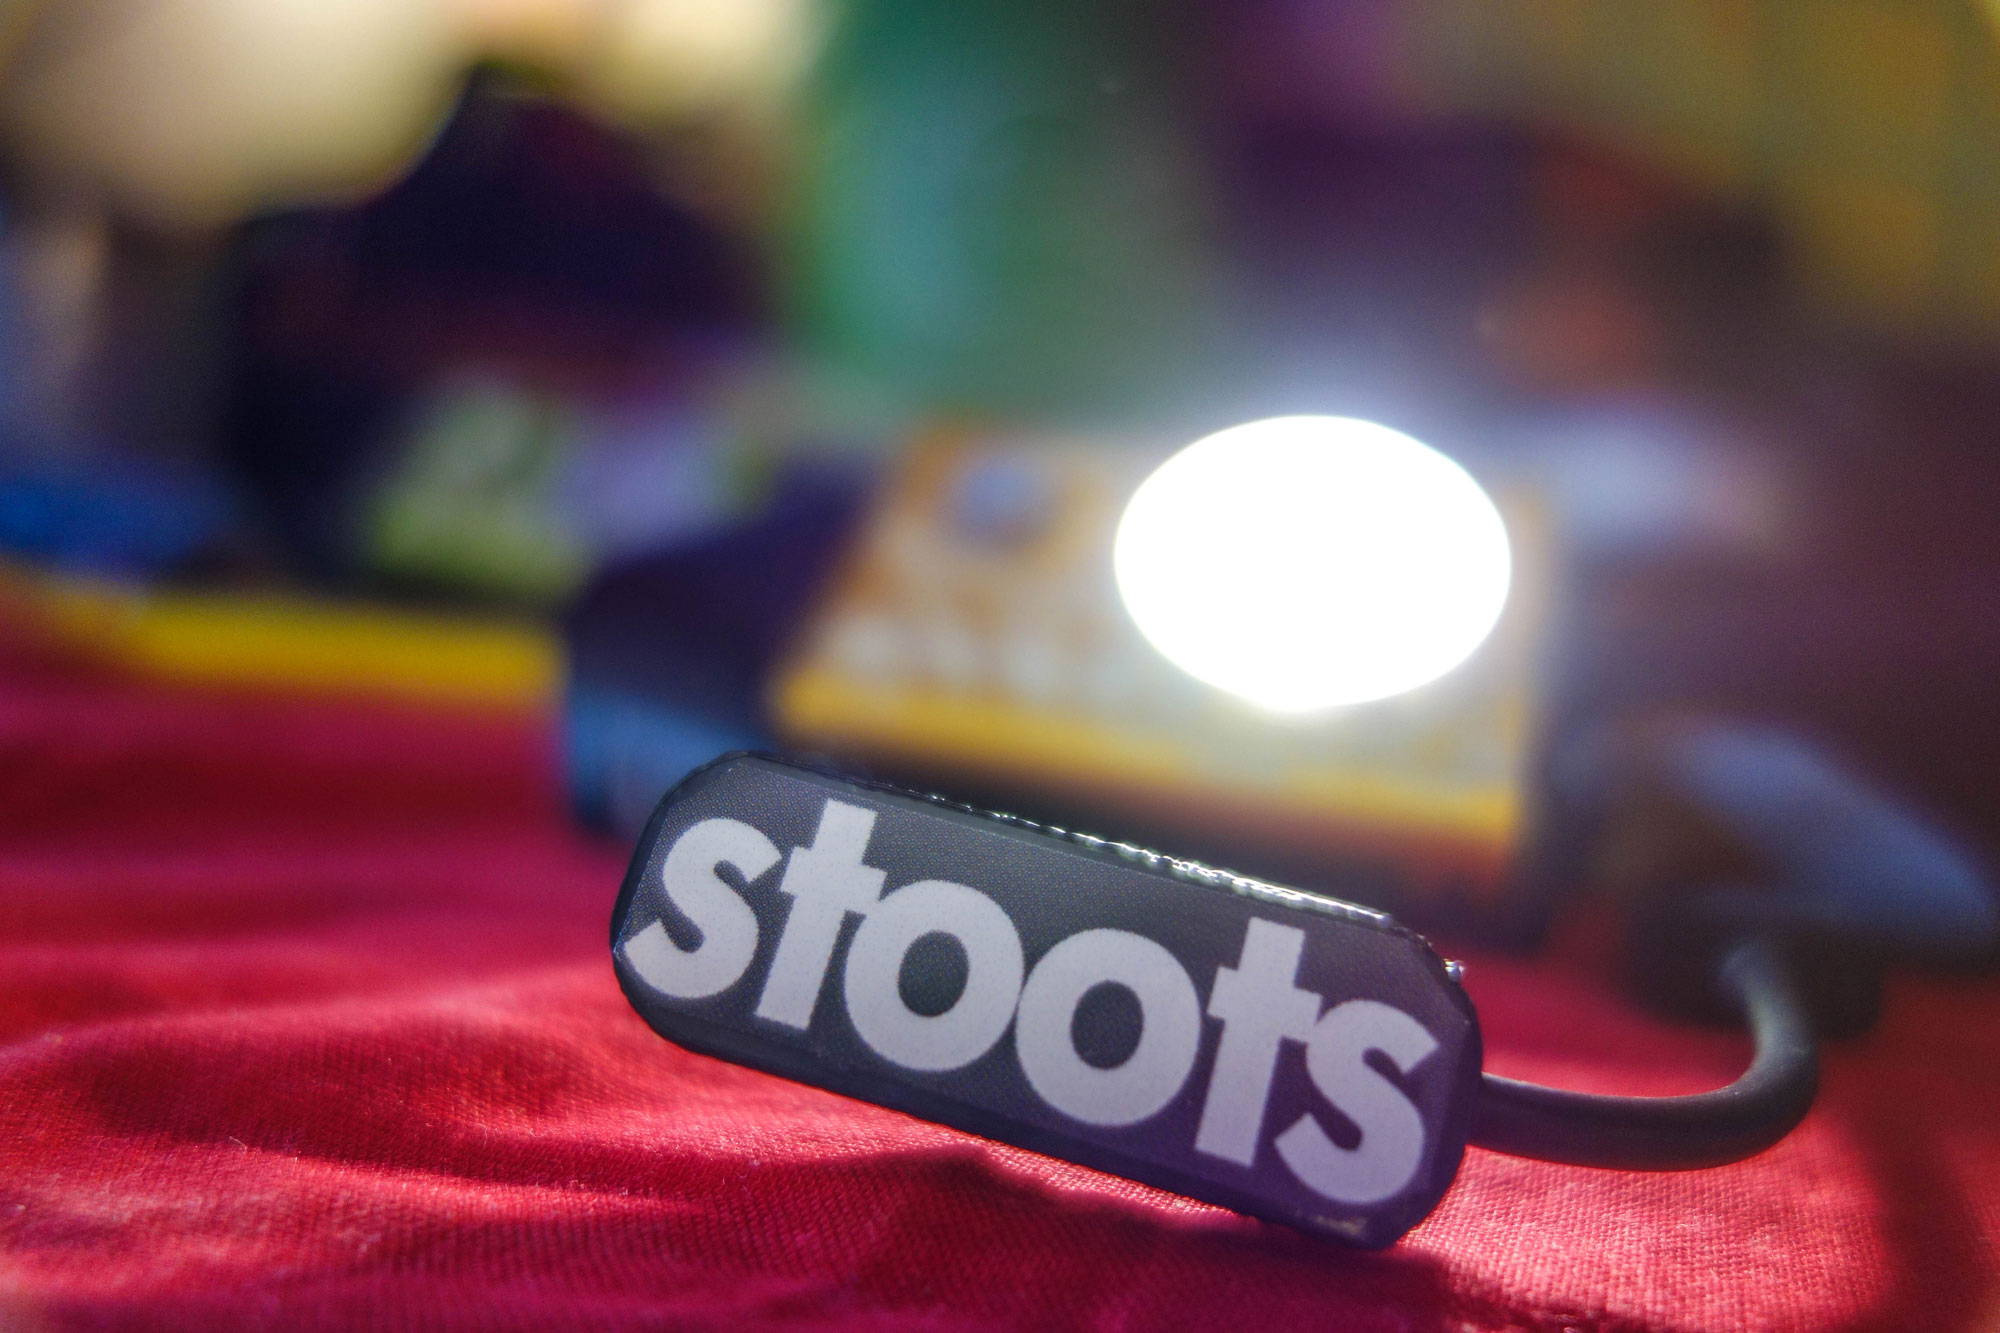 Stoots-concept-3